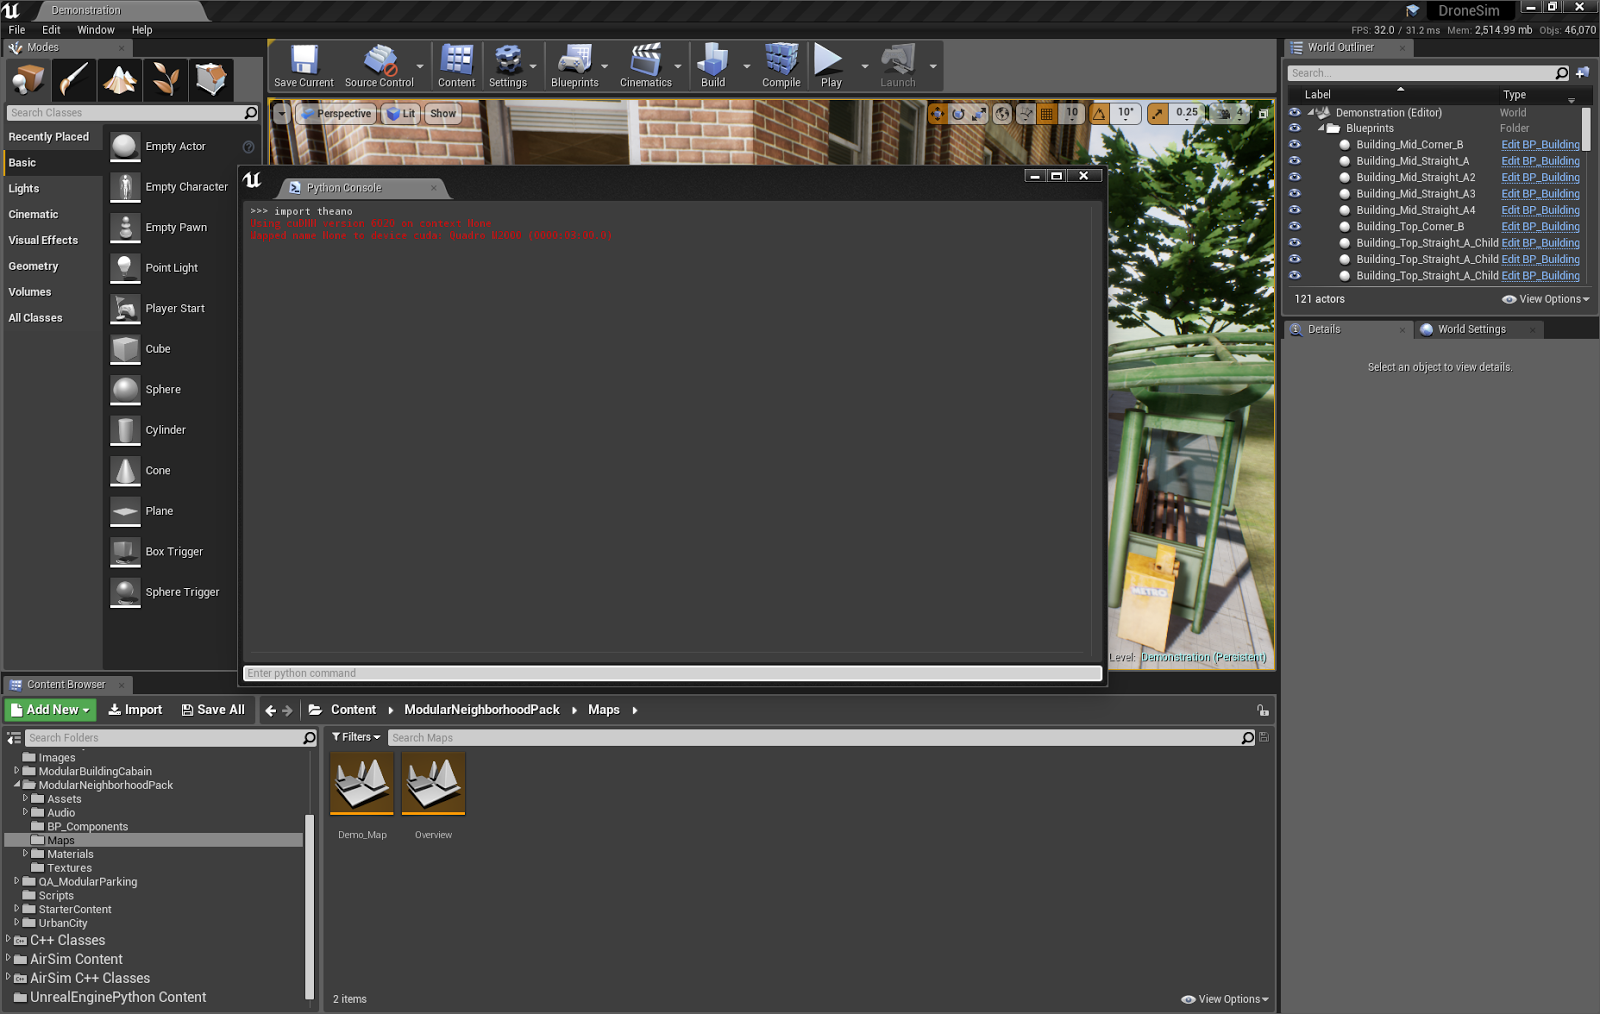 KT's Blog: Use Deep Learning Tool inside Unreal